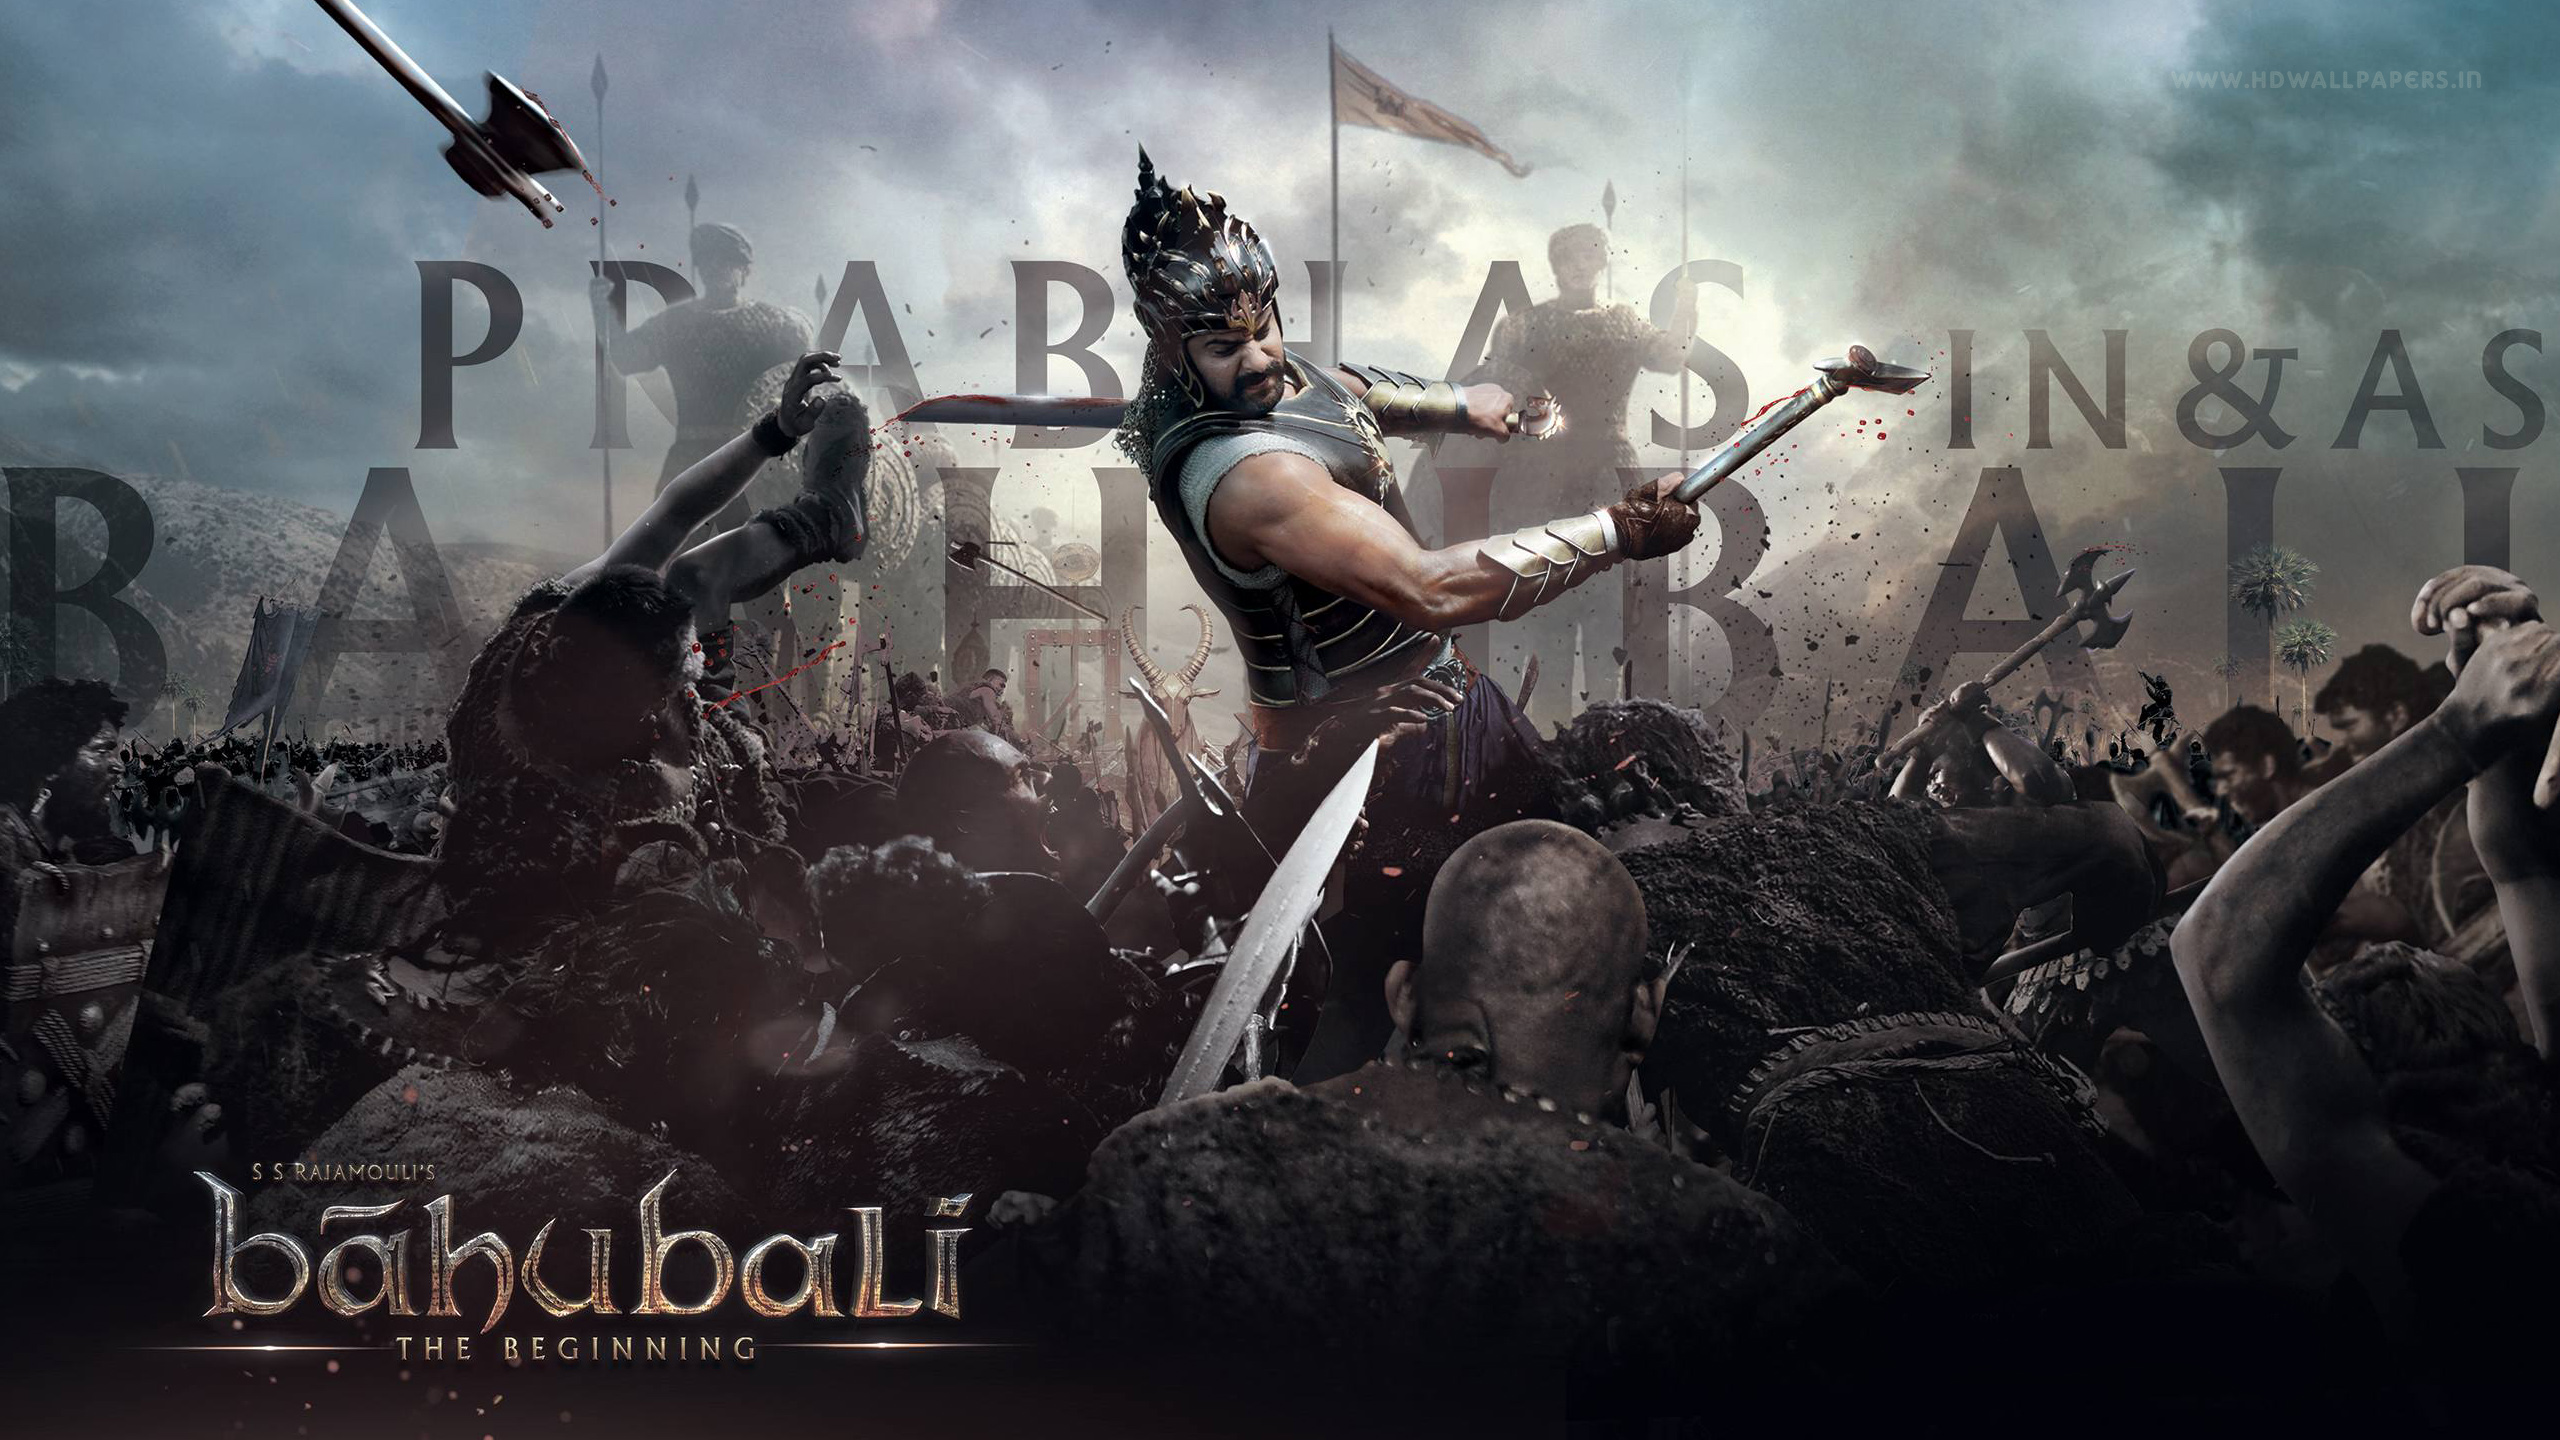 Best Actor Prabhas Hd Wallpaper: Bahubali Wallpapers, Photos And Desktop Backgrounds Up To